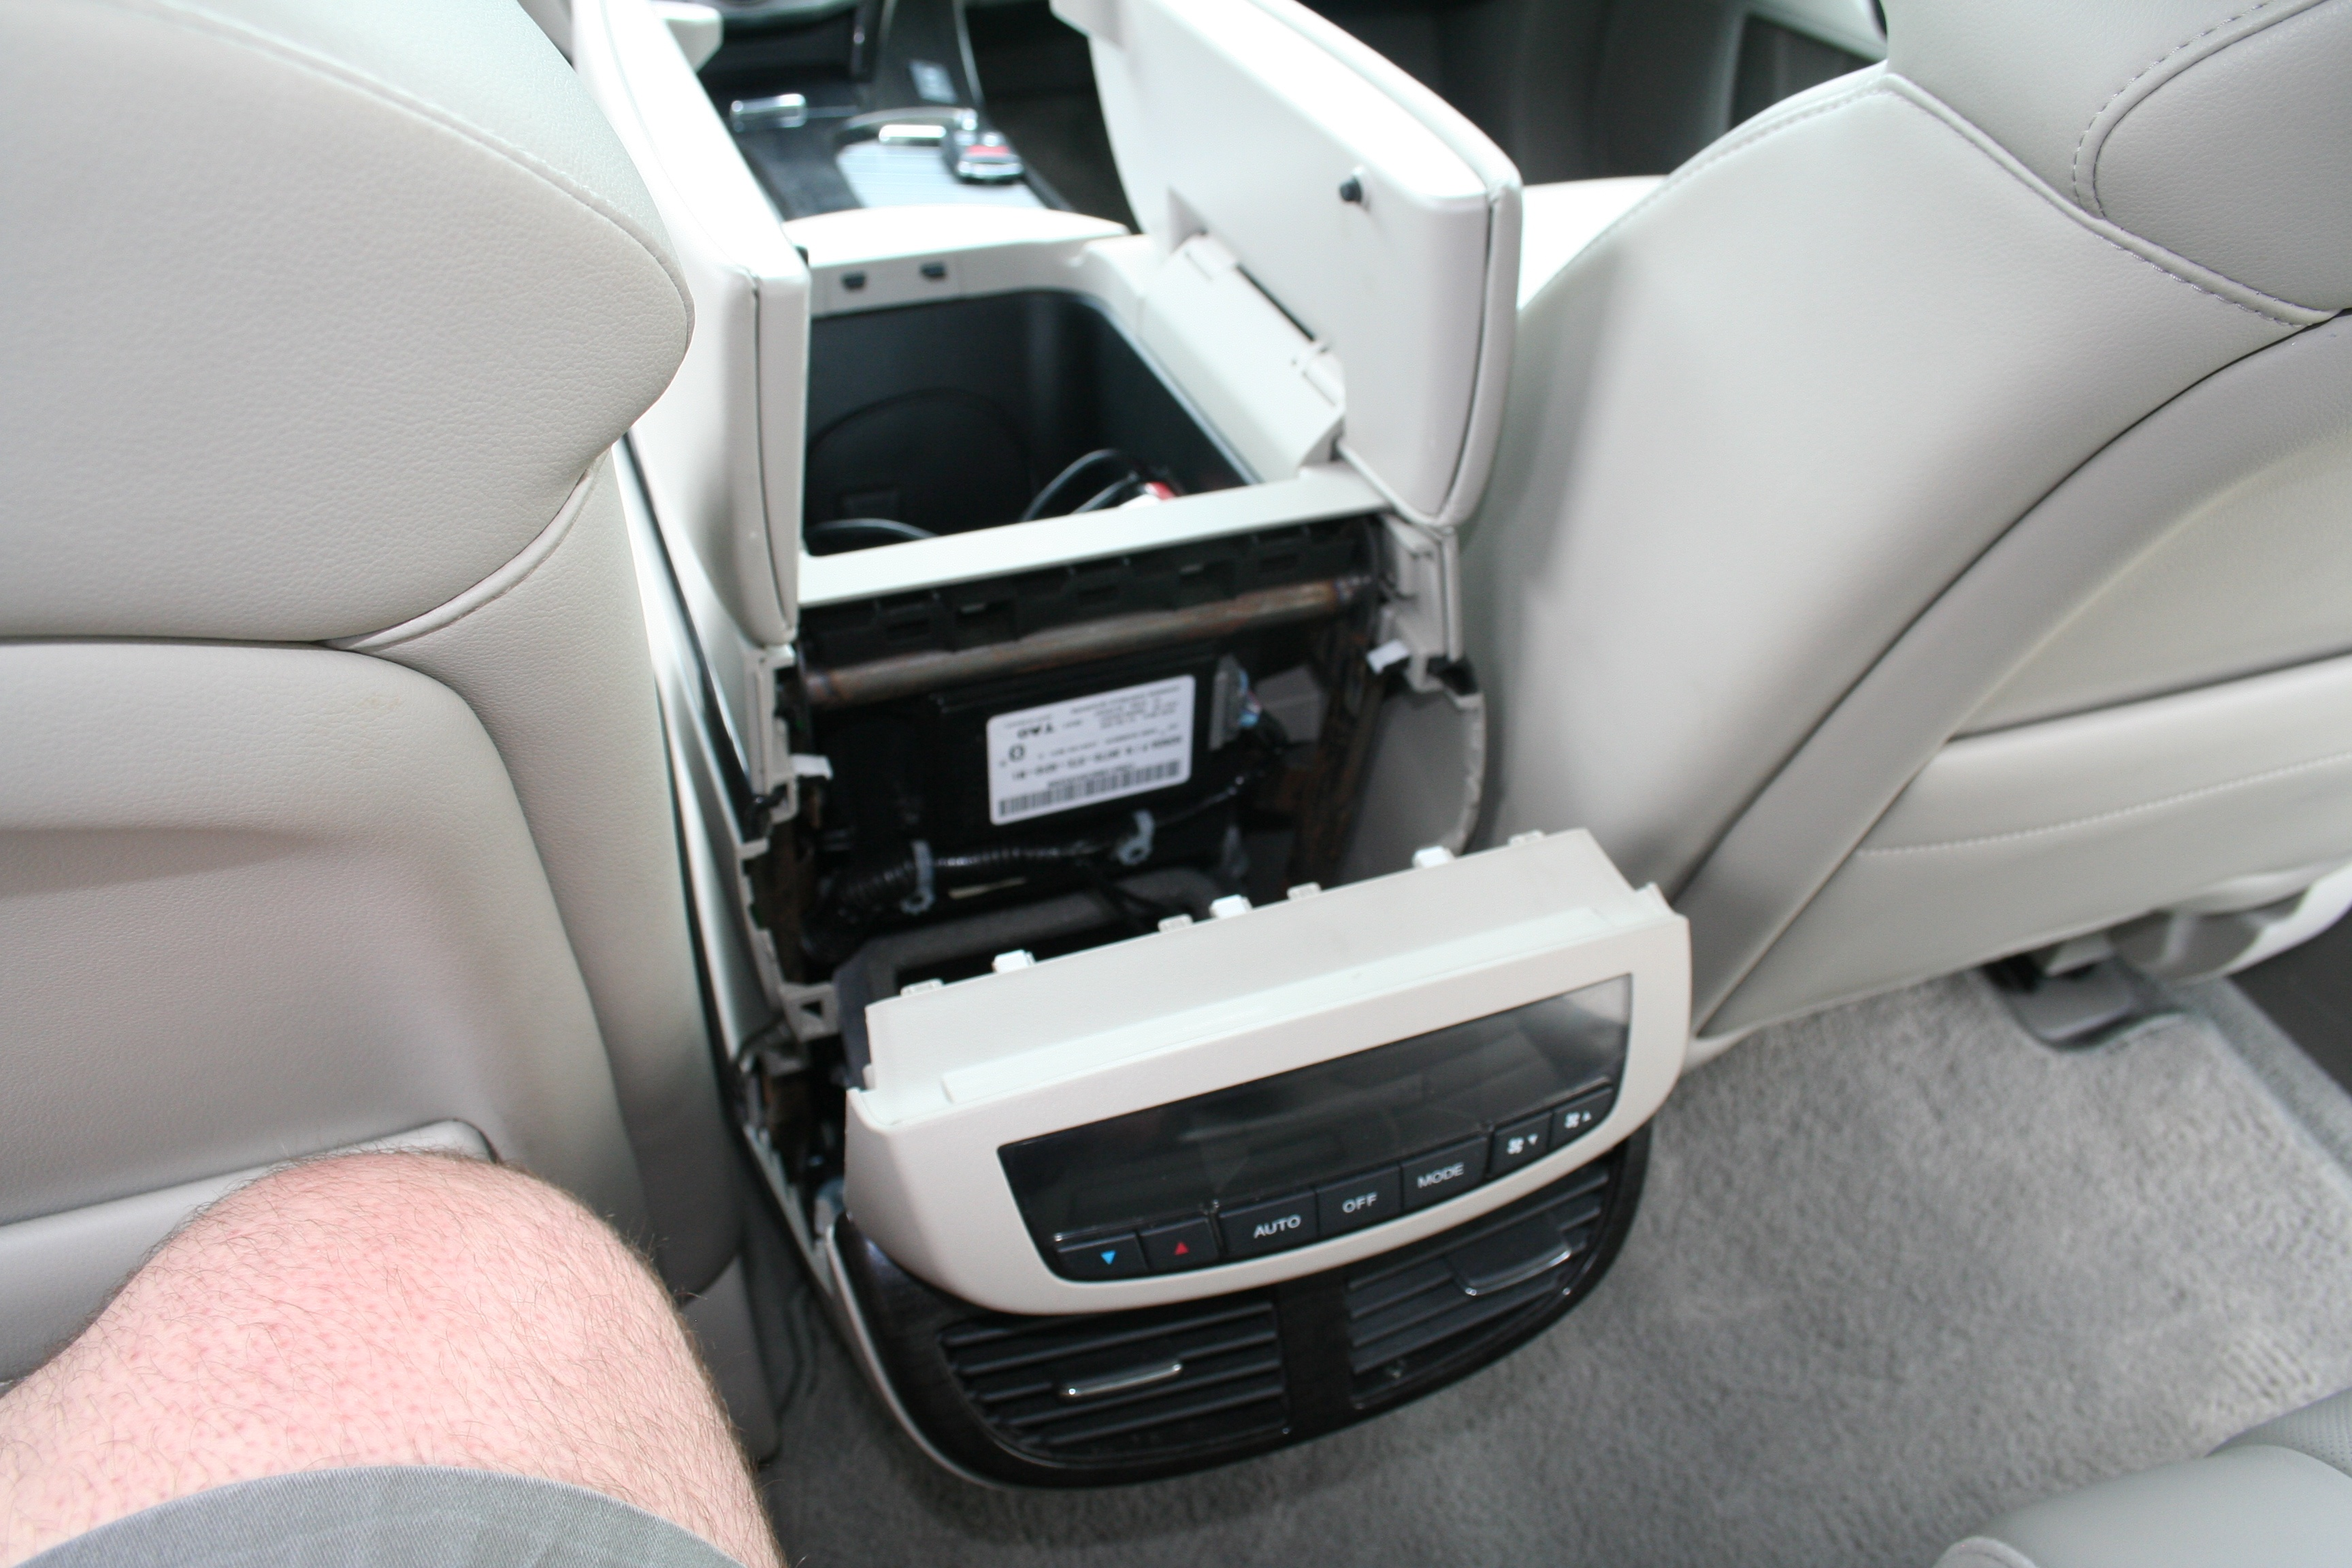 41339d1273975560 new usa spec ipod adapter 2007 mdx out works great img_0675 how to replace or upgrade 2nd gen center arm rests acura mdx forum